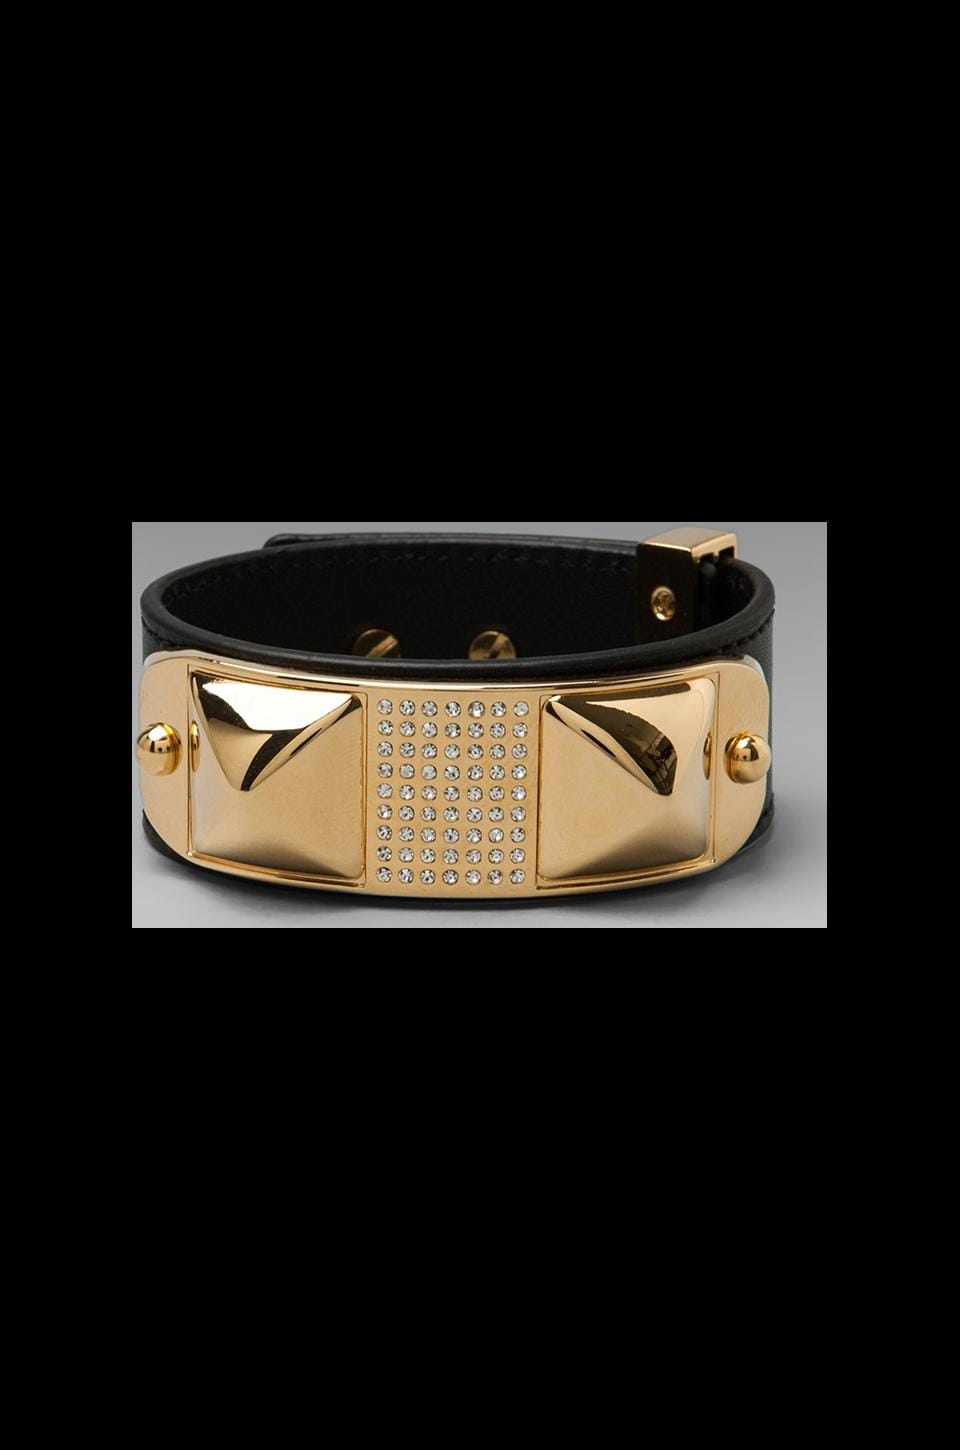 Rebecca Minkoff Small Studded Pave Leather Bracelet in Black/Gold